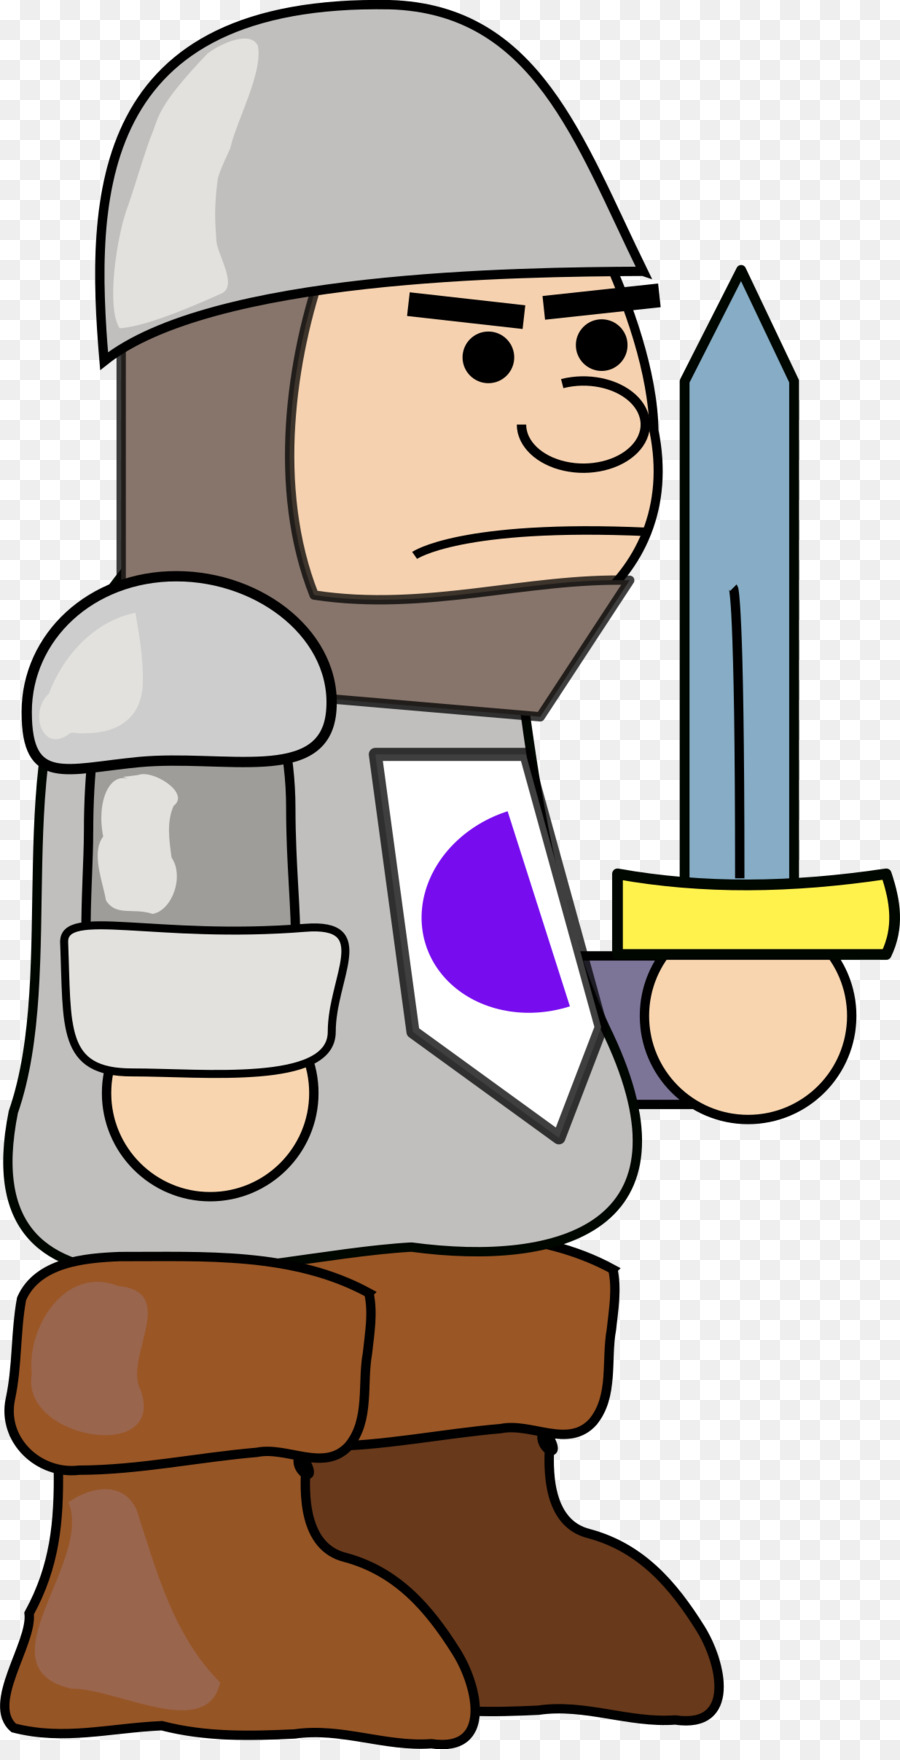 clipart royalty free library Middle finger warrior soldier. Medieval army clipart